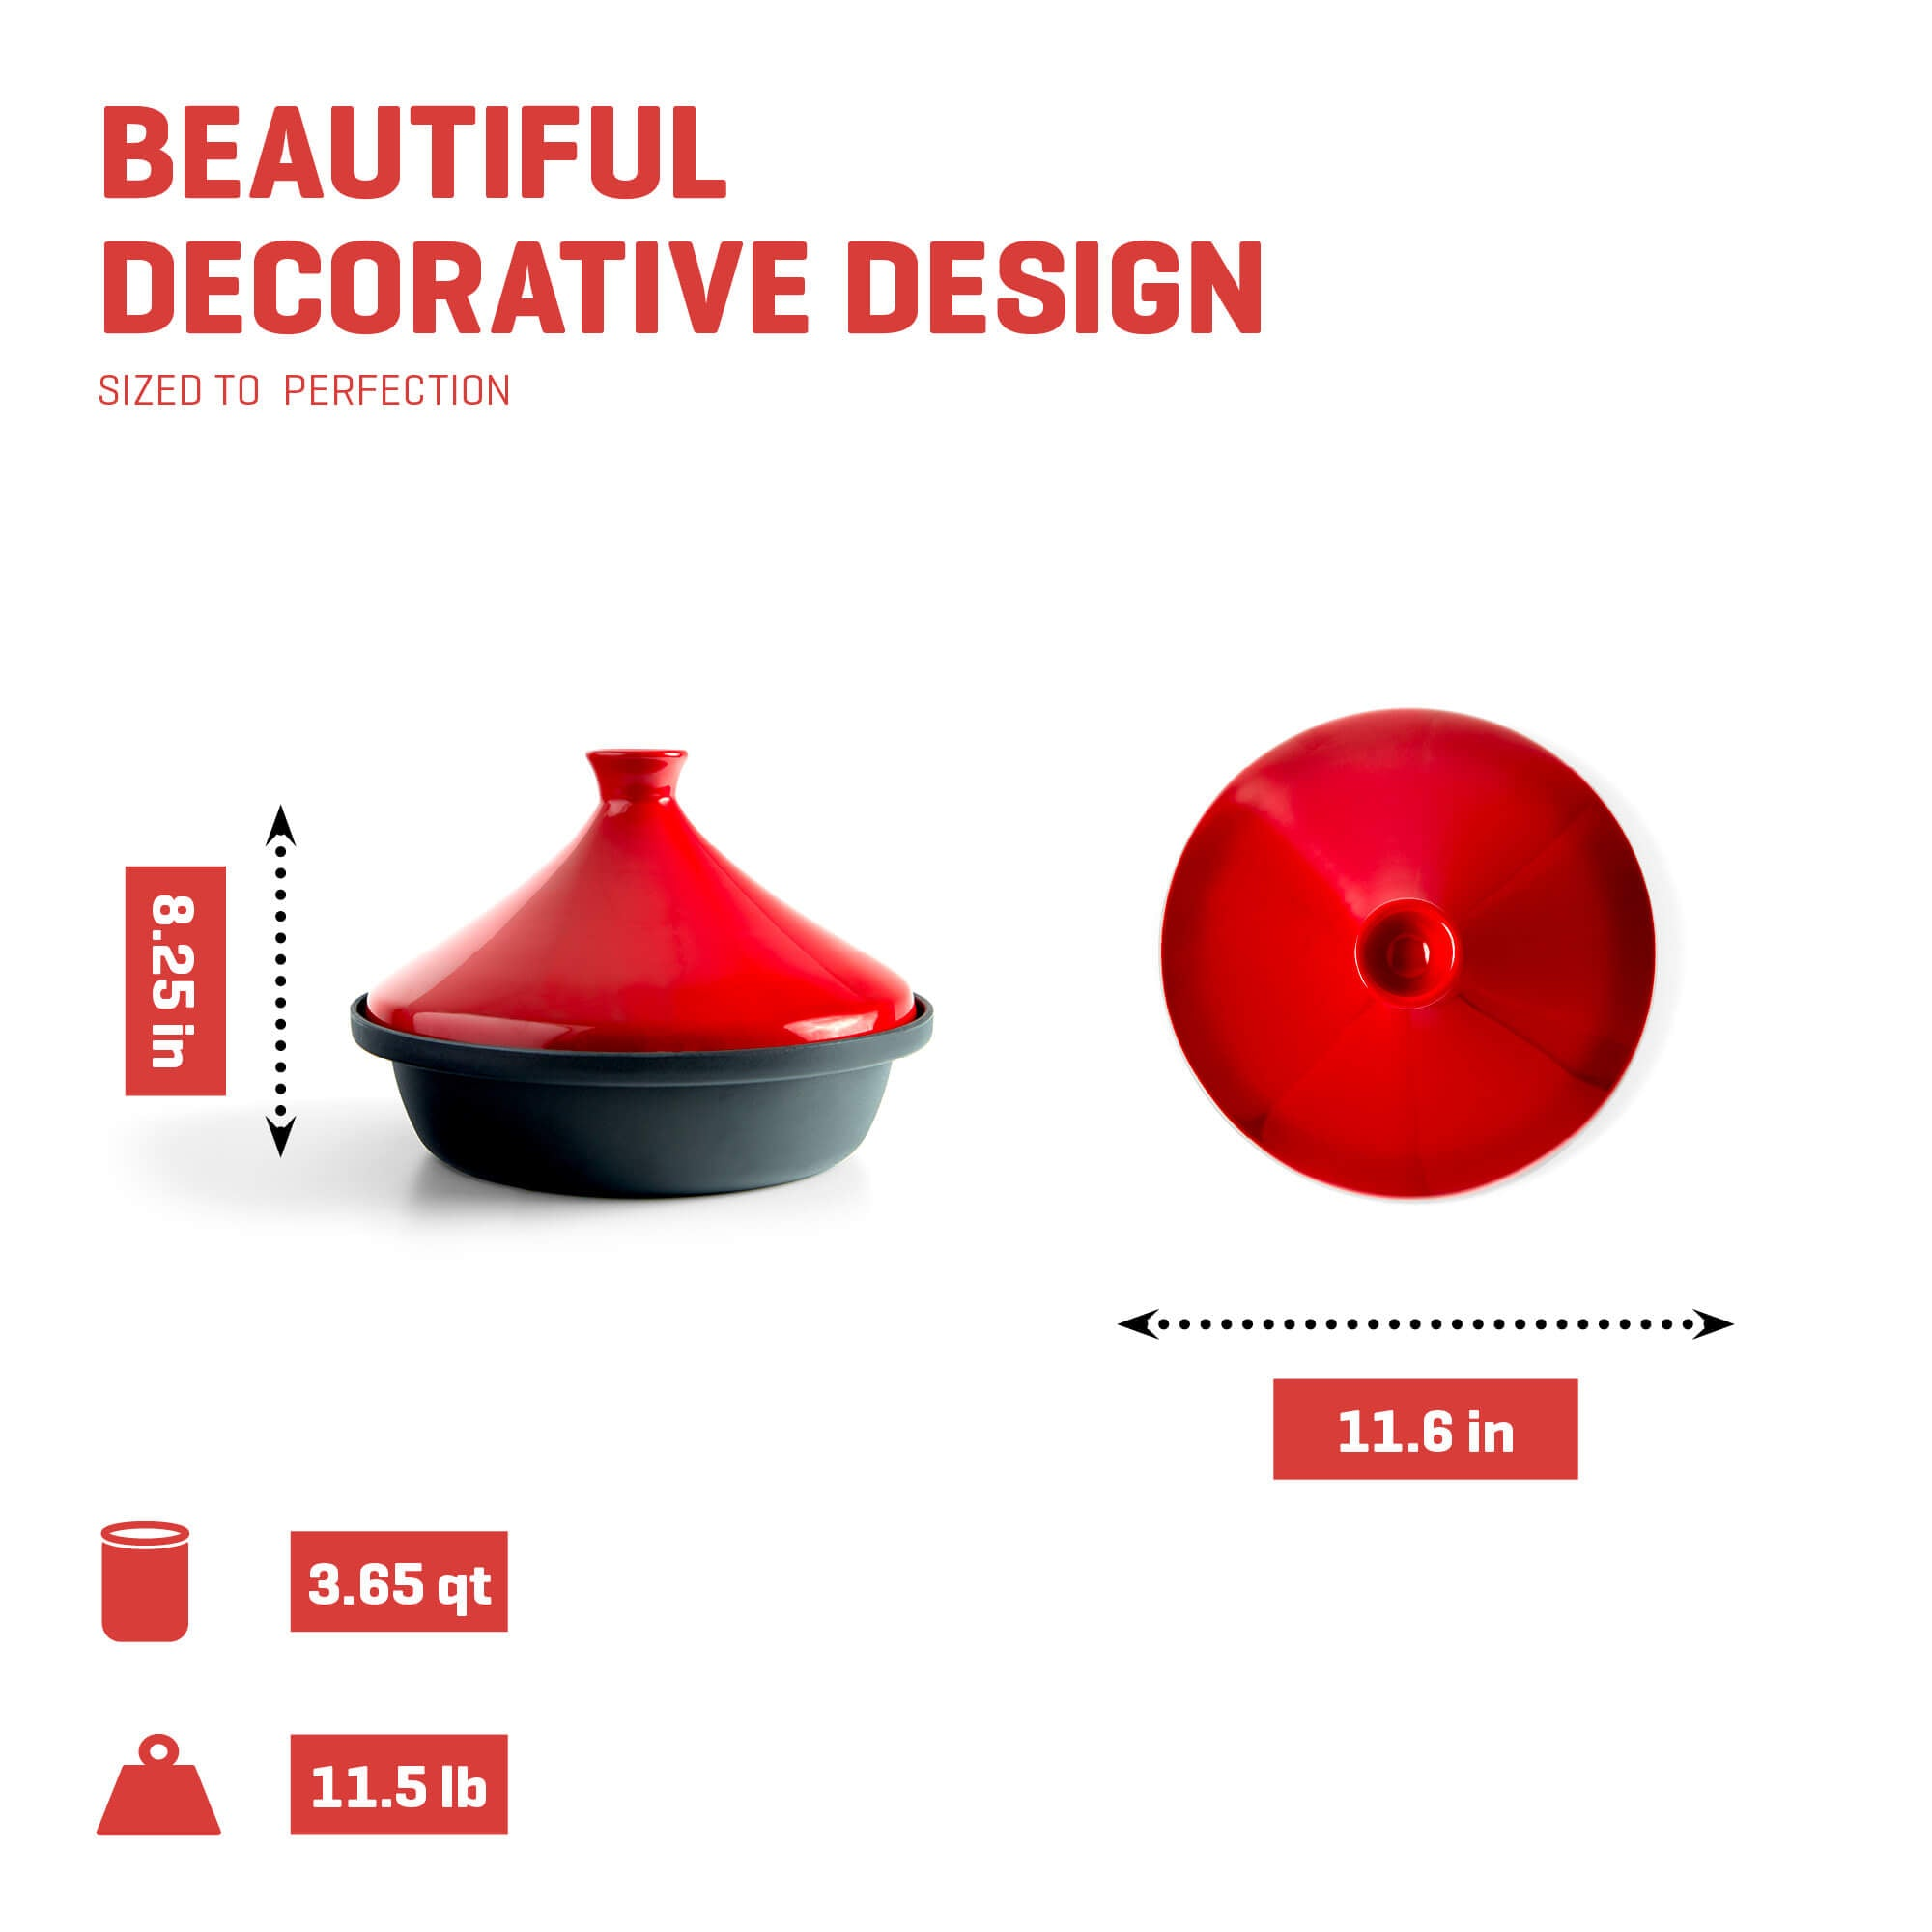 tagine pot decorative design